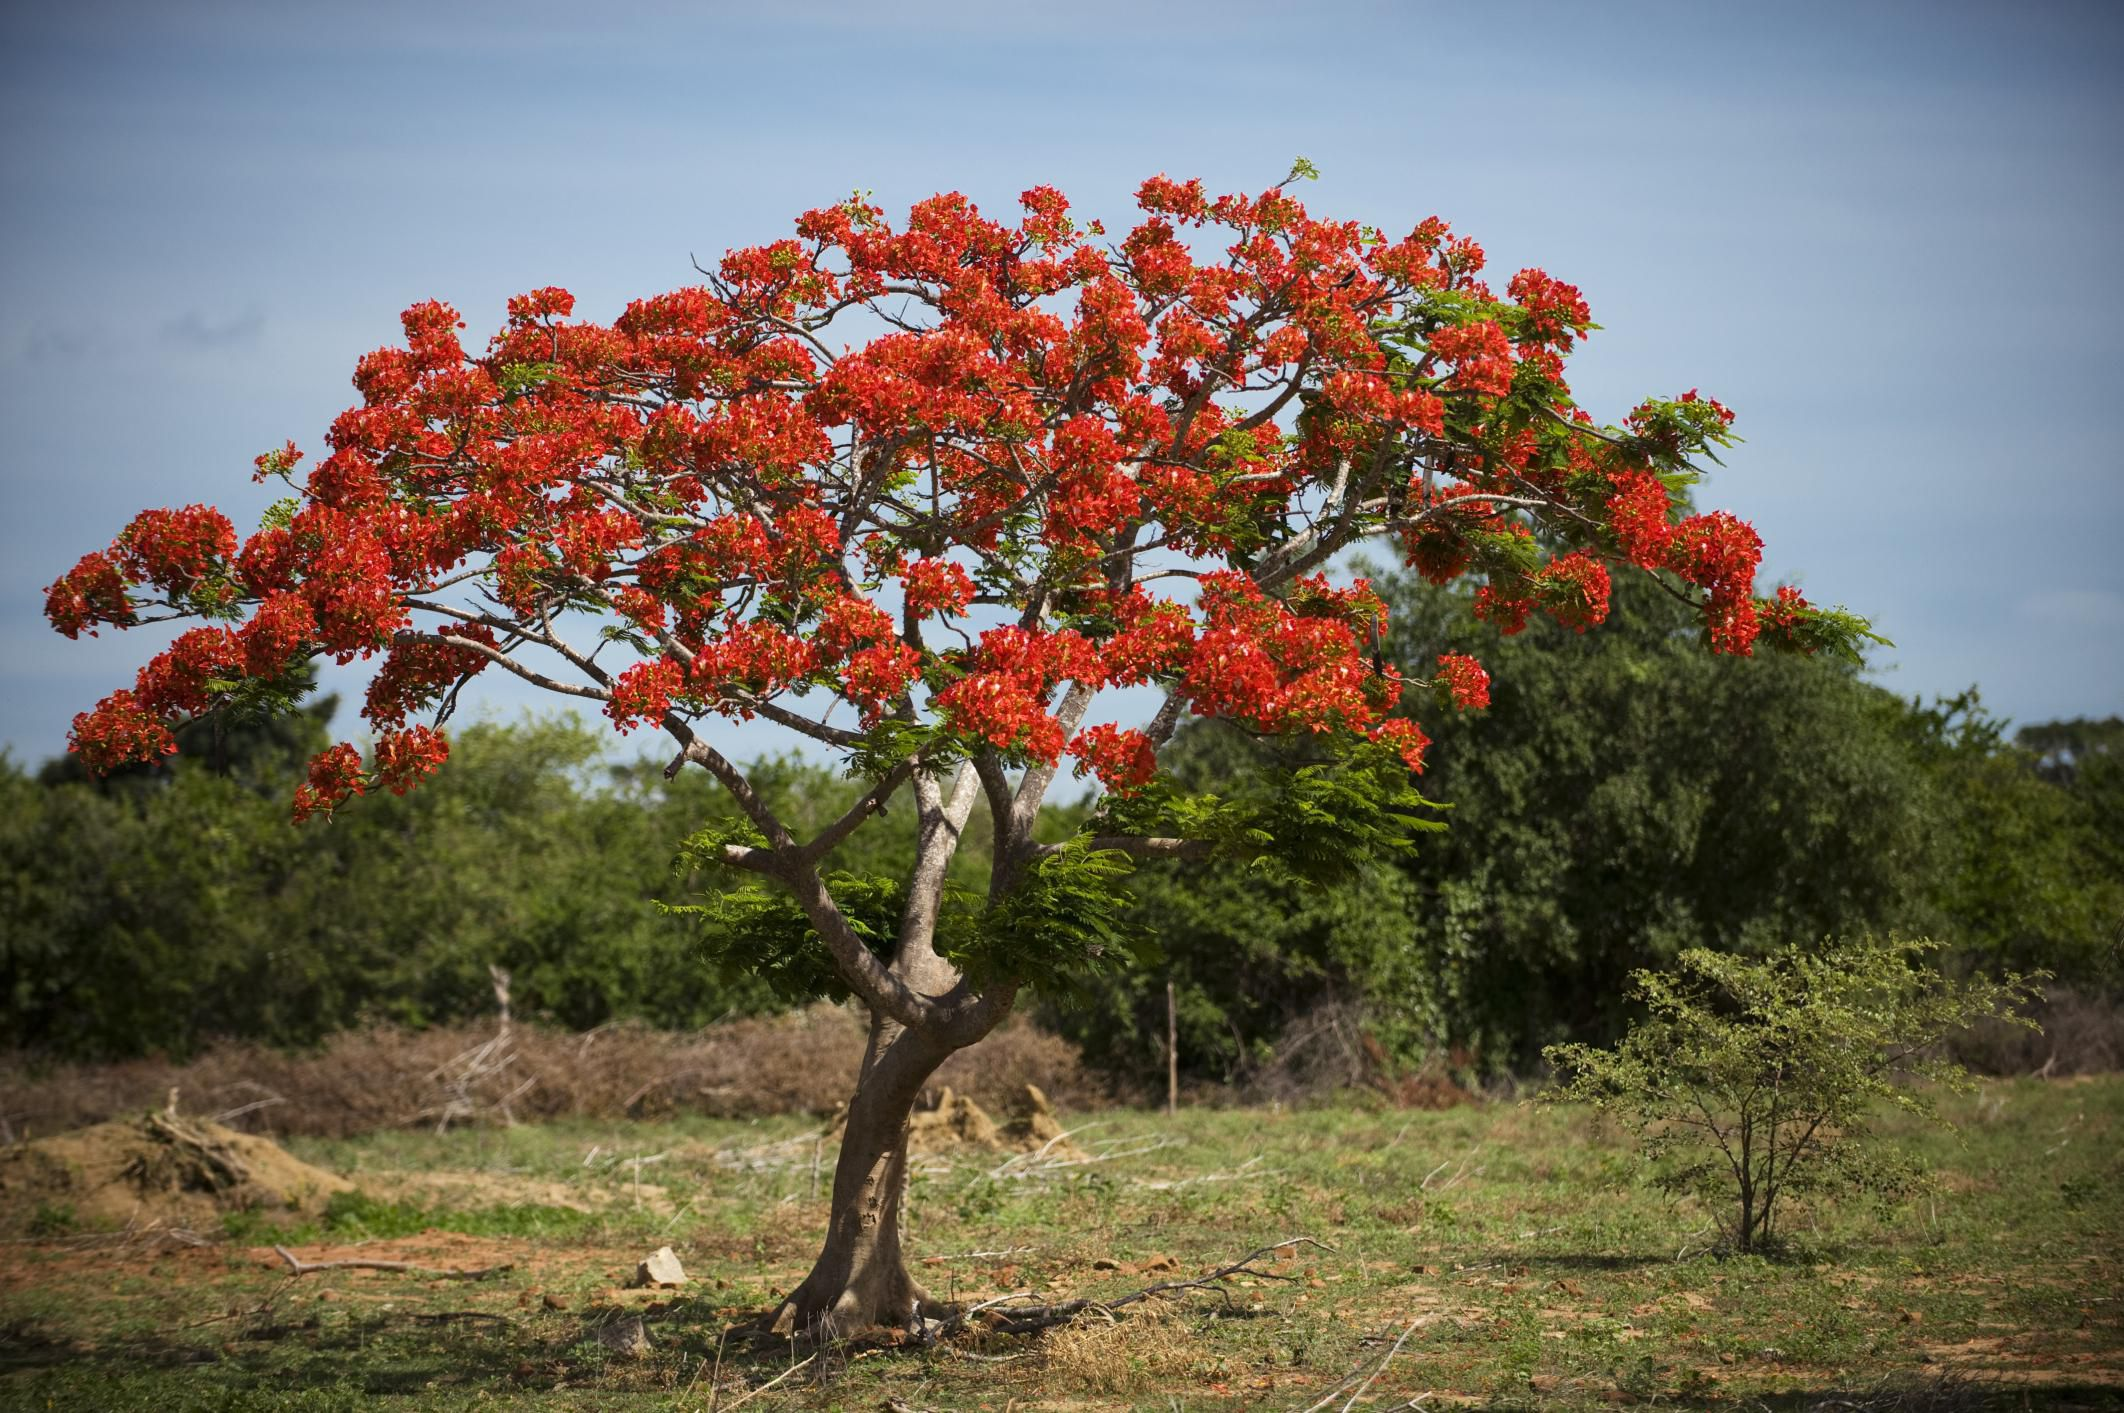 Growing The Royal Poinciana